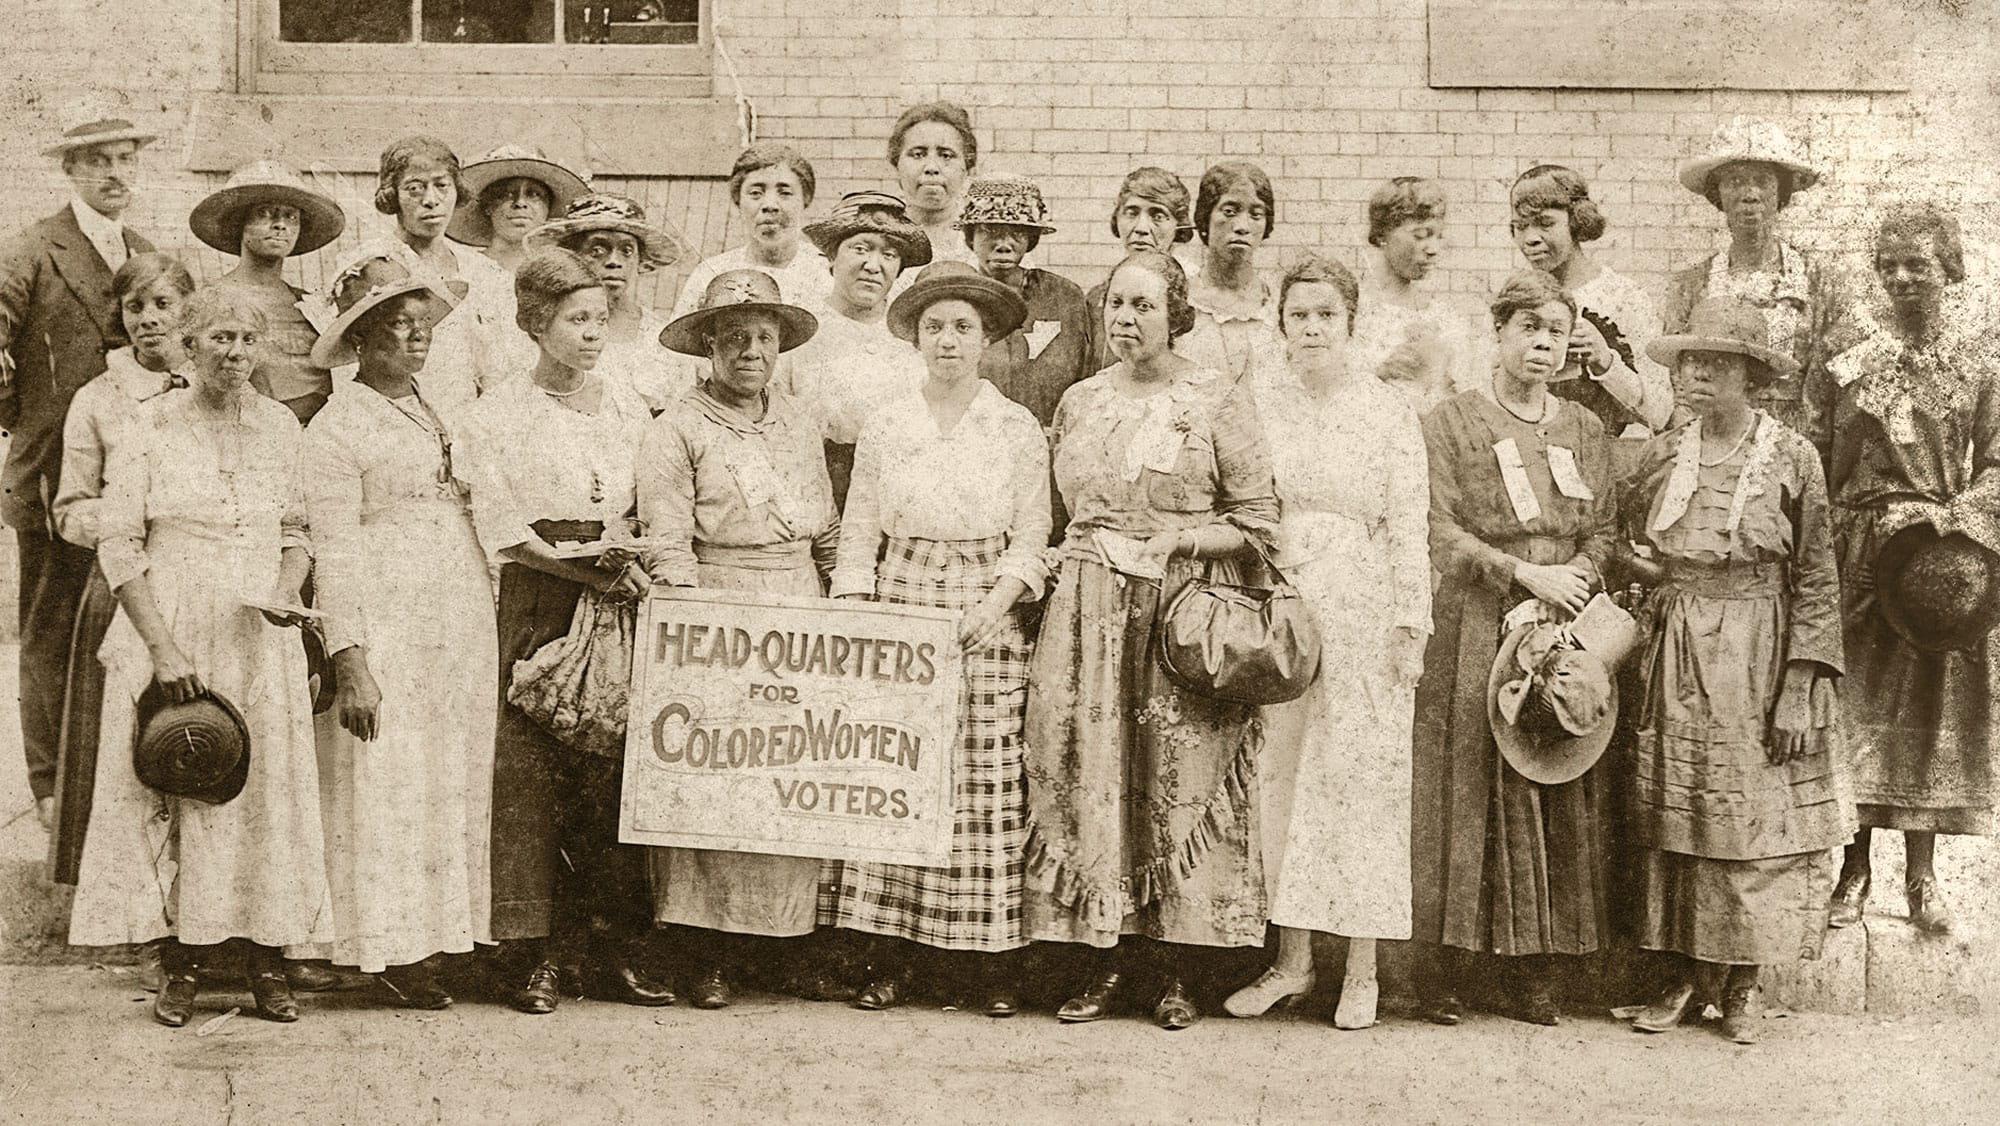 A group of Black suffragists from between 1920 and 1920